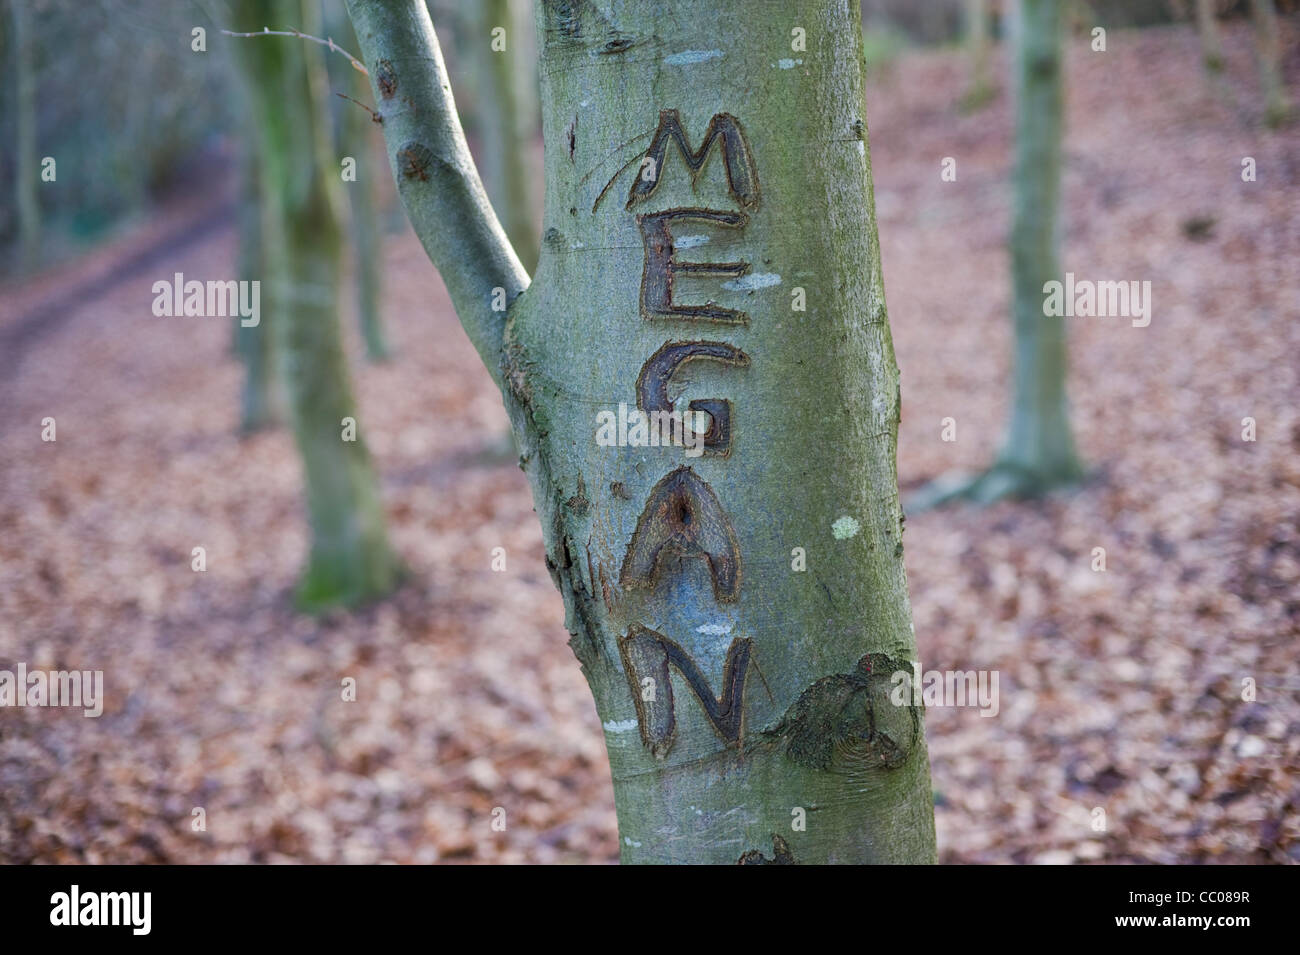 Carved Names On Tree Trunk Stock Photos Carved Names On Tree Trunk